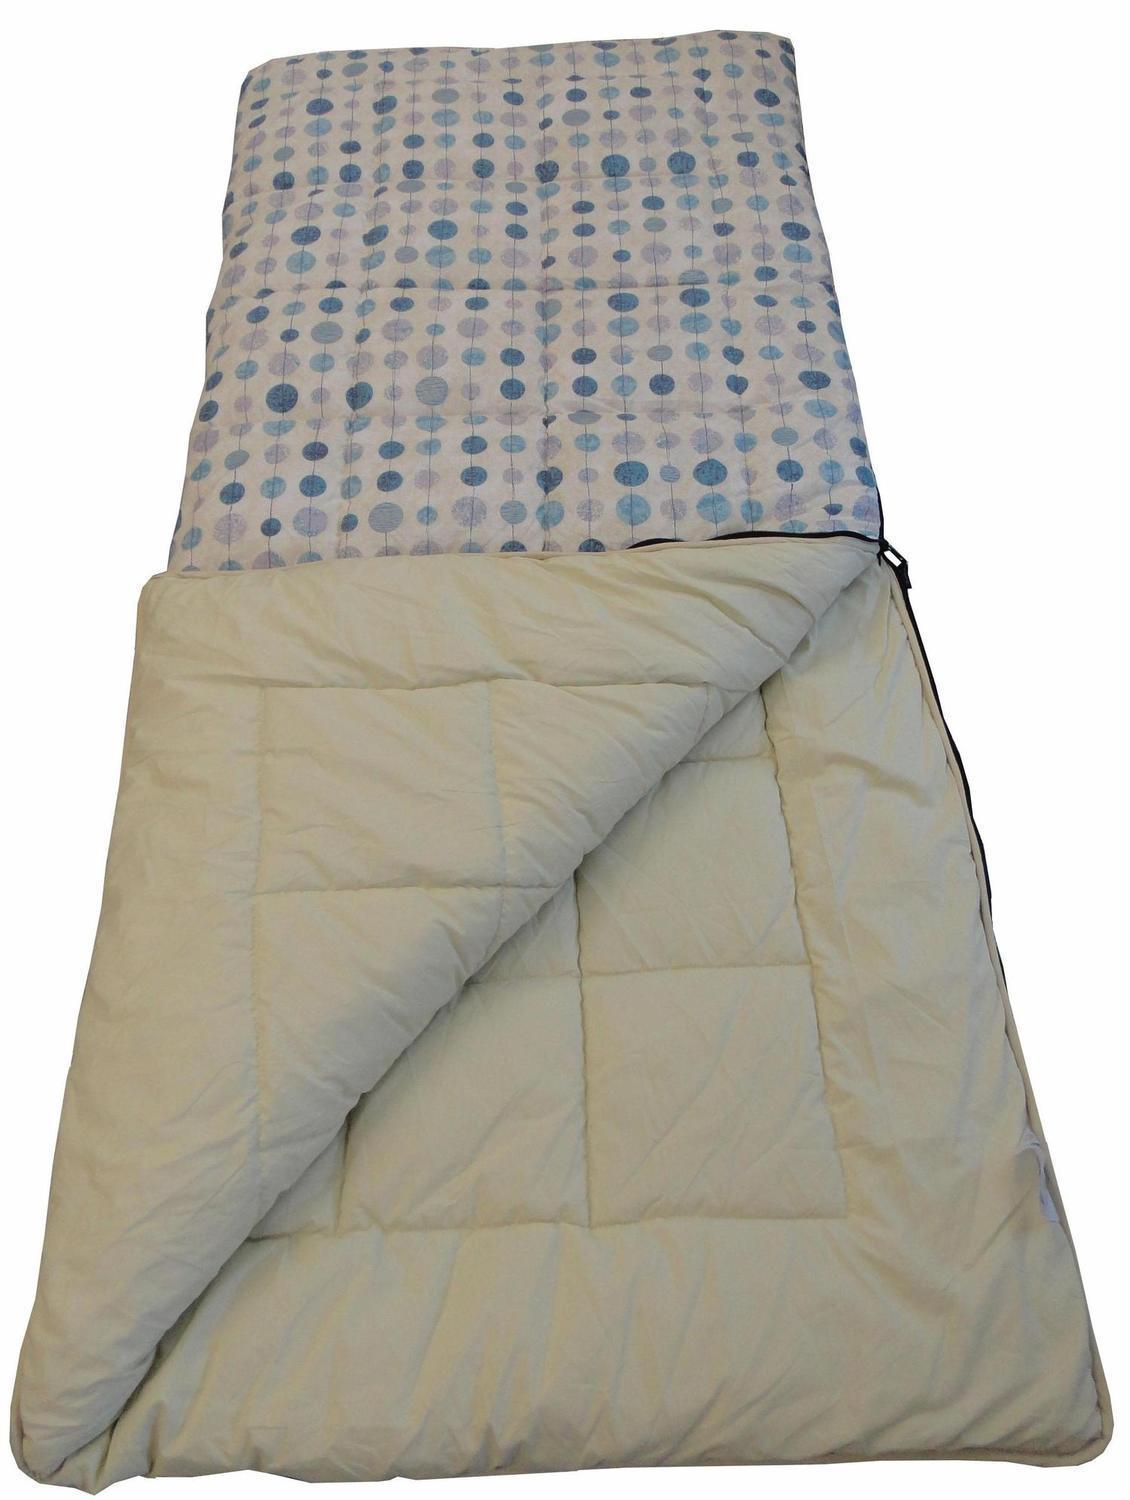 Caravan Camping 50oz Super Size Sleeping Bag